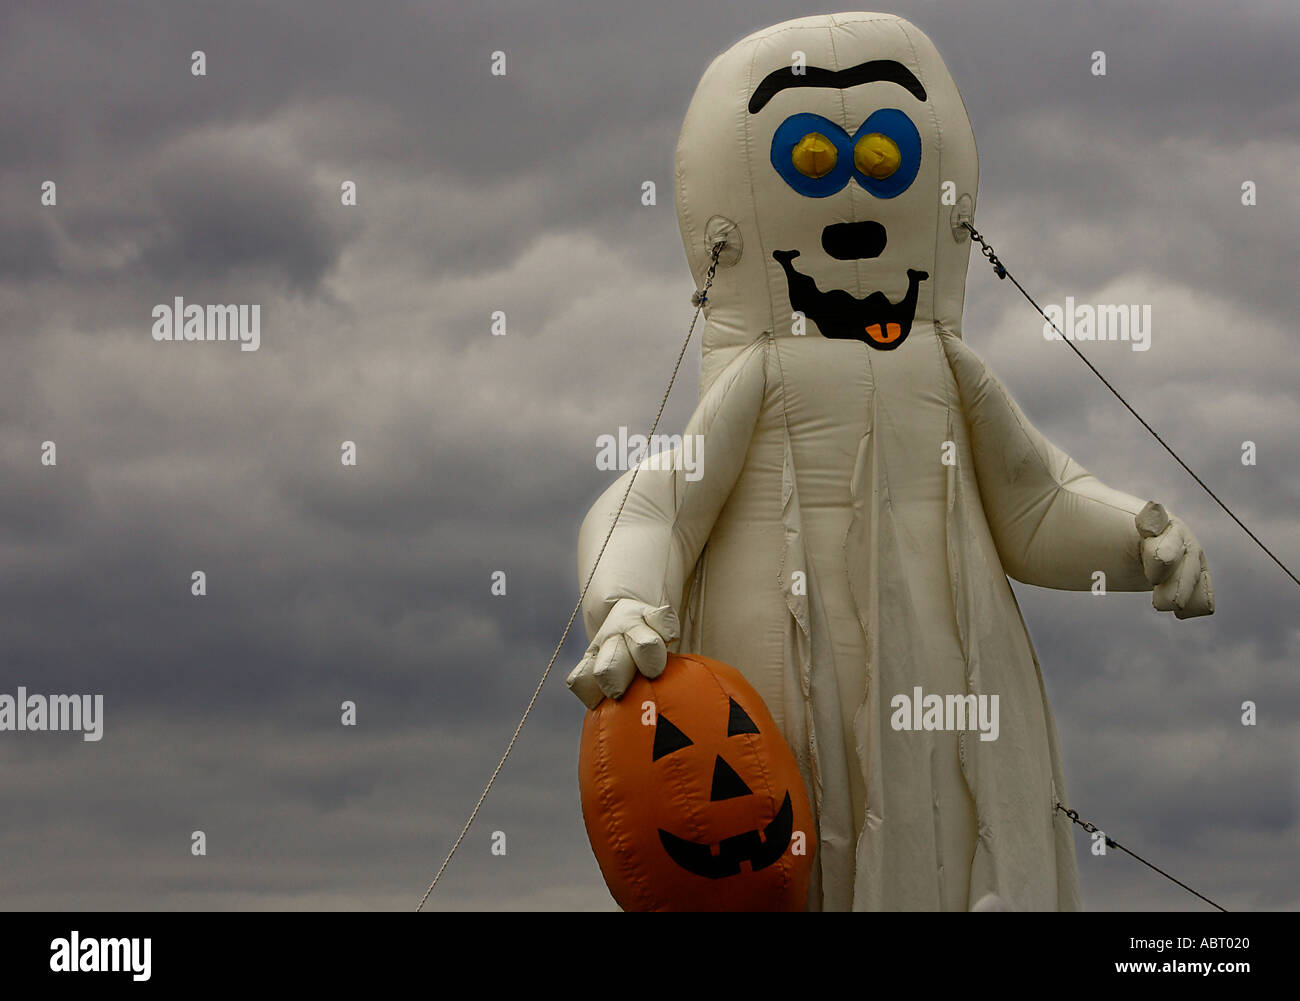 Inflatable ghost holding a Halloween pumpkin - Stock Image